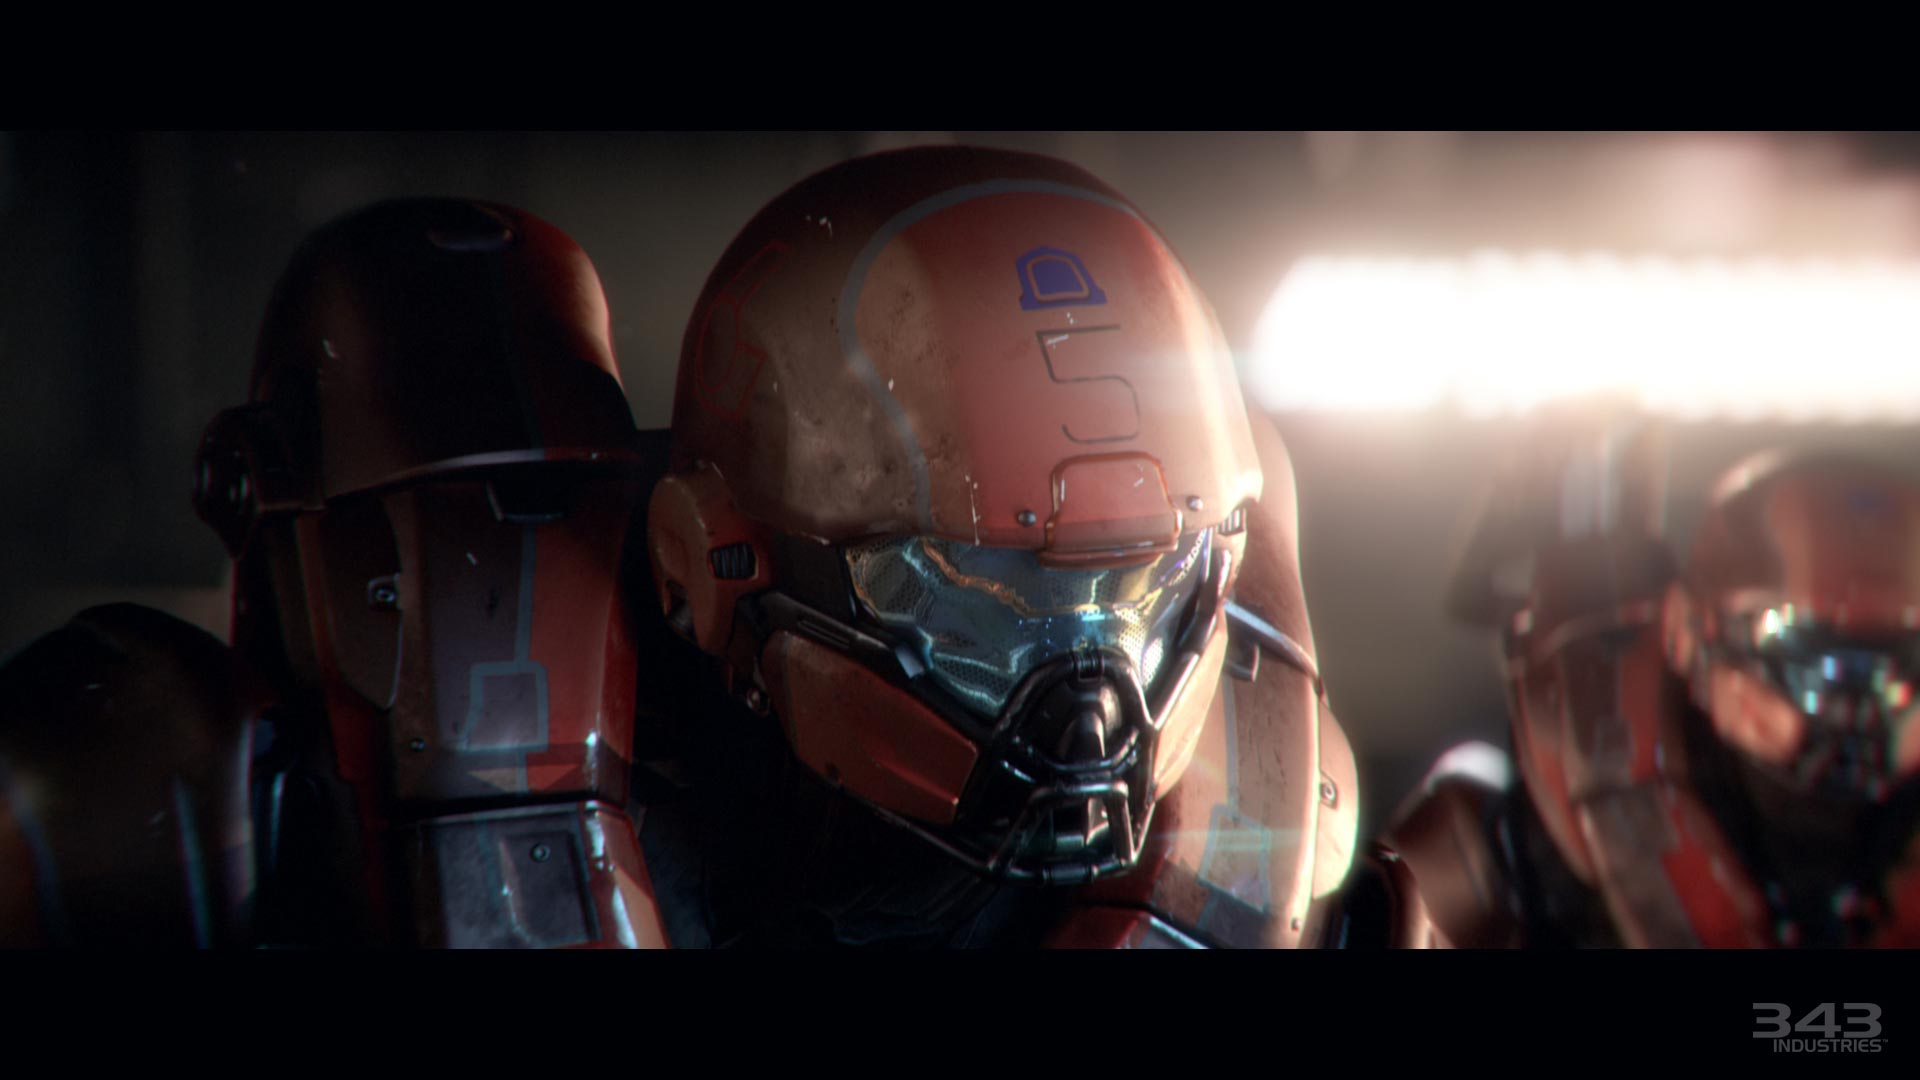 Halo 5 Guardians Cover Halo 5 Guardians Beta is 720p